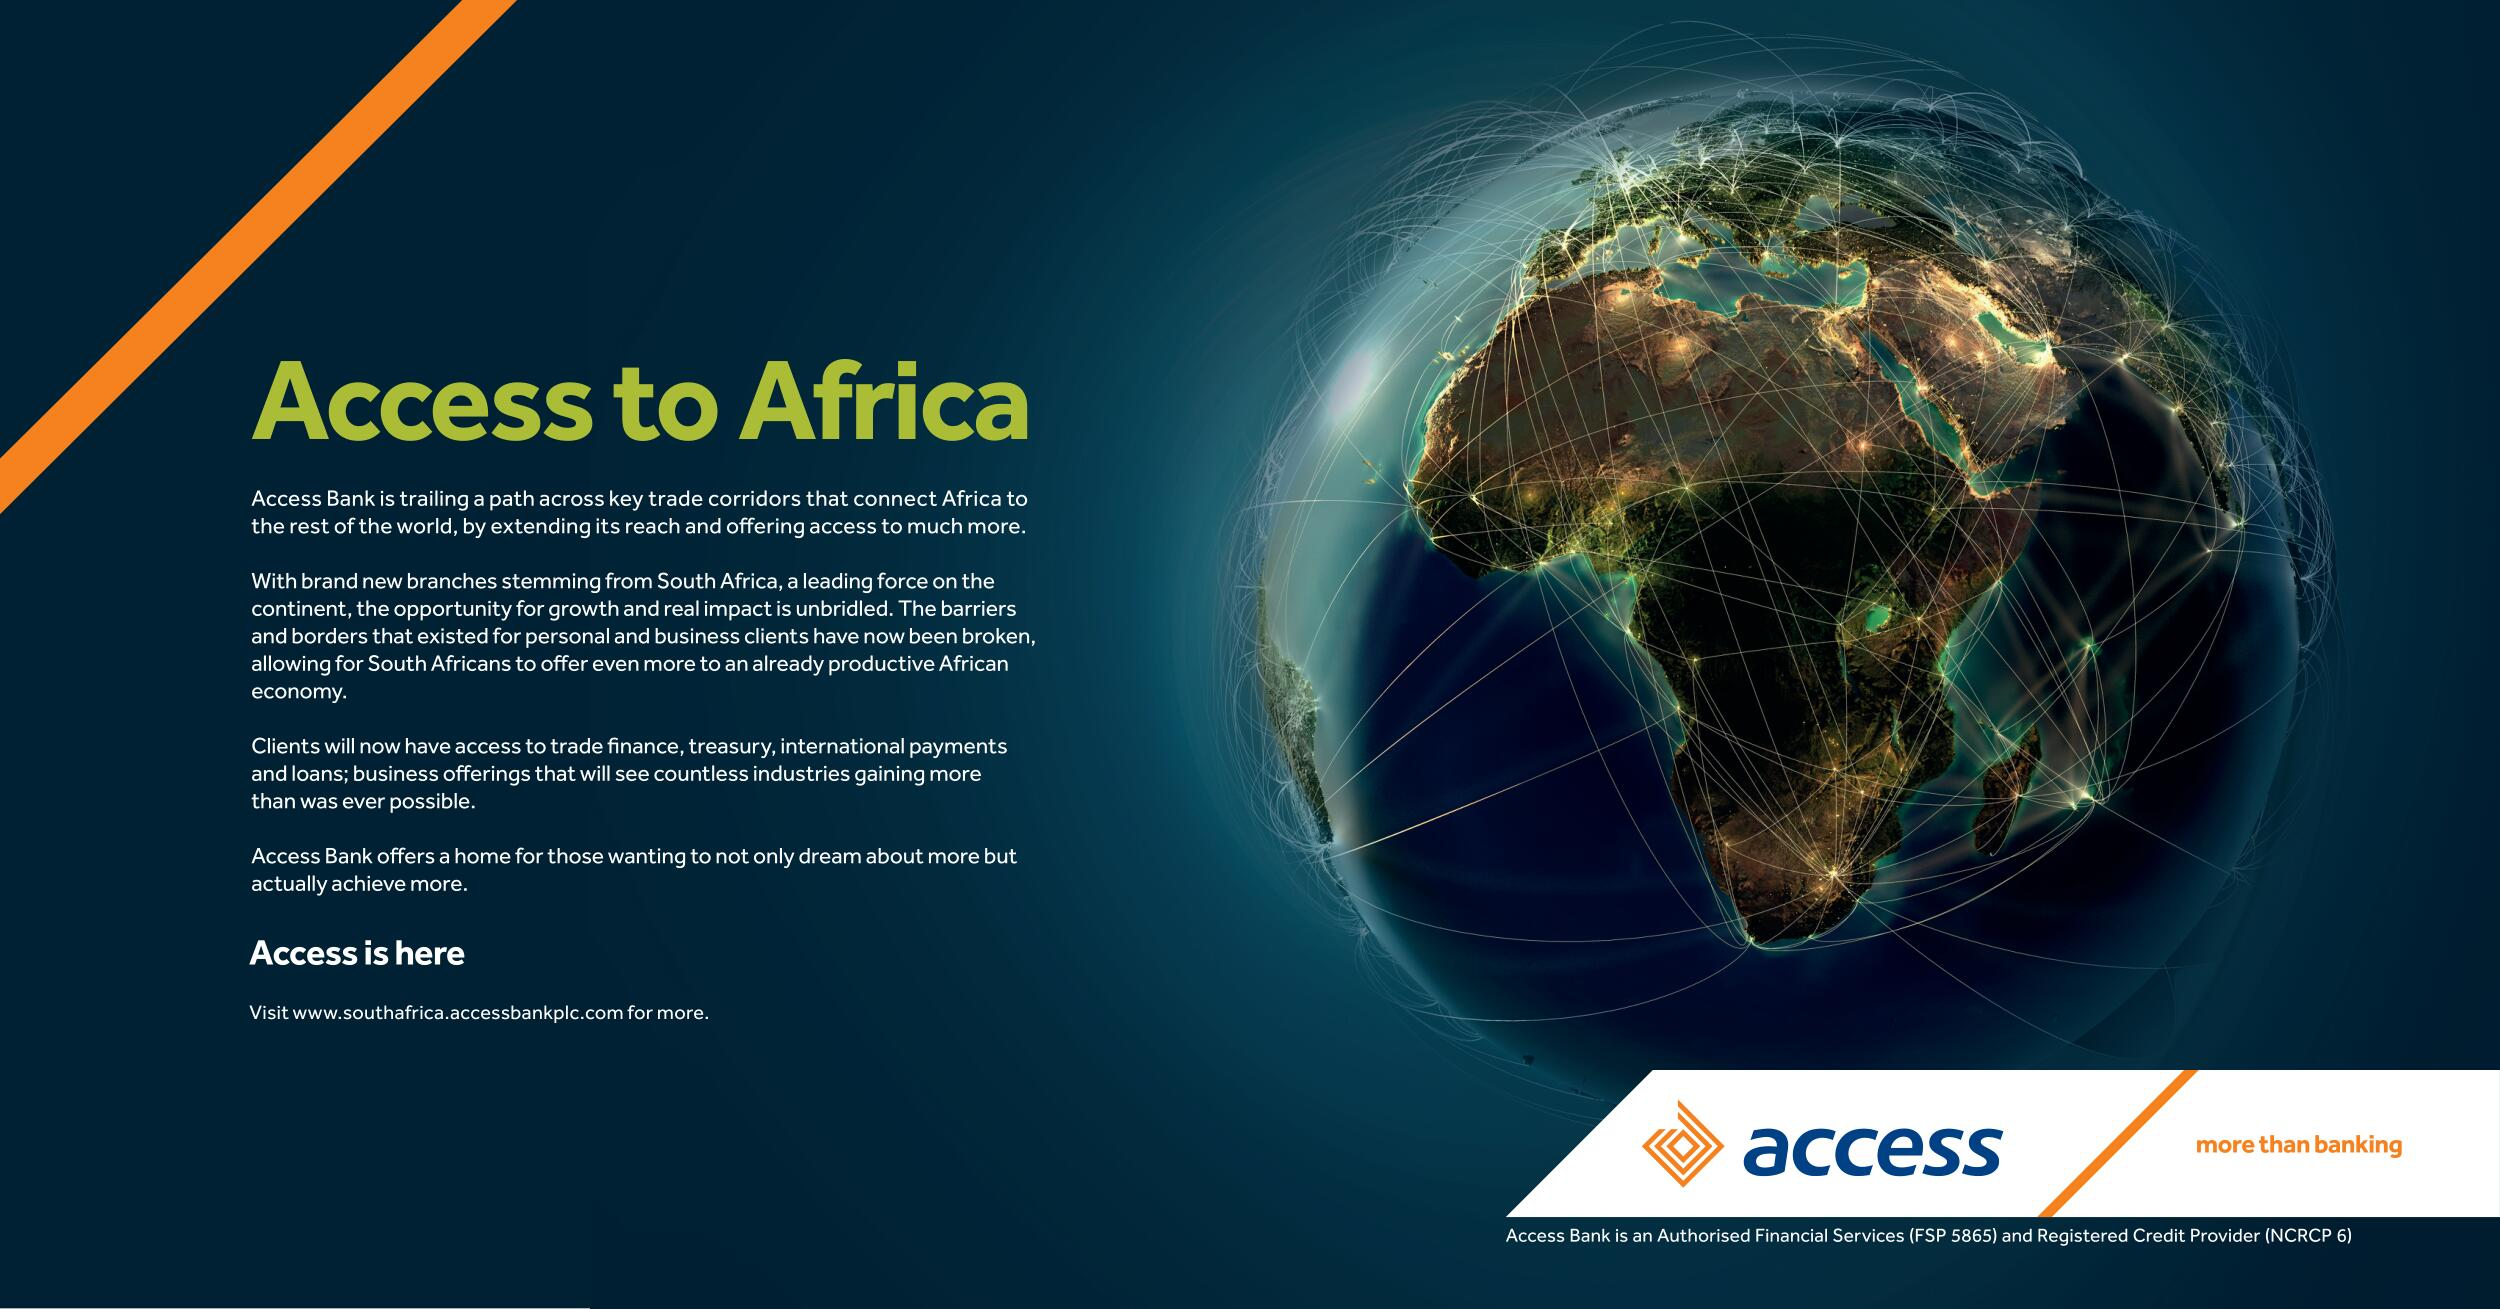 870_Access Bank_1200x628_image for online article